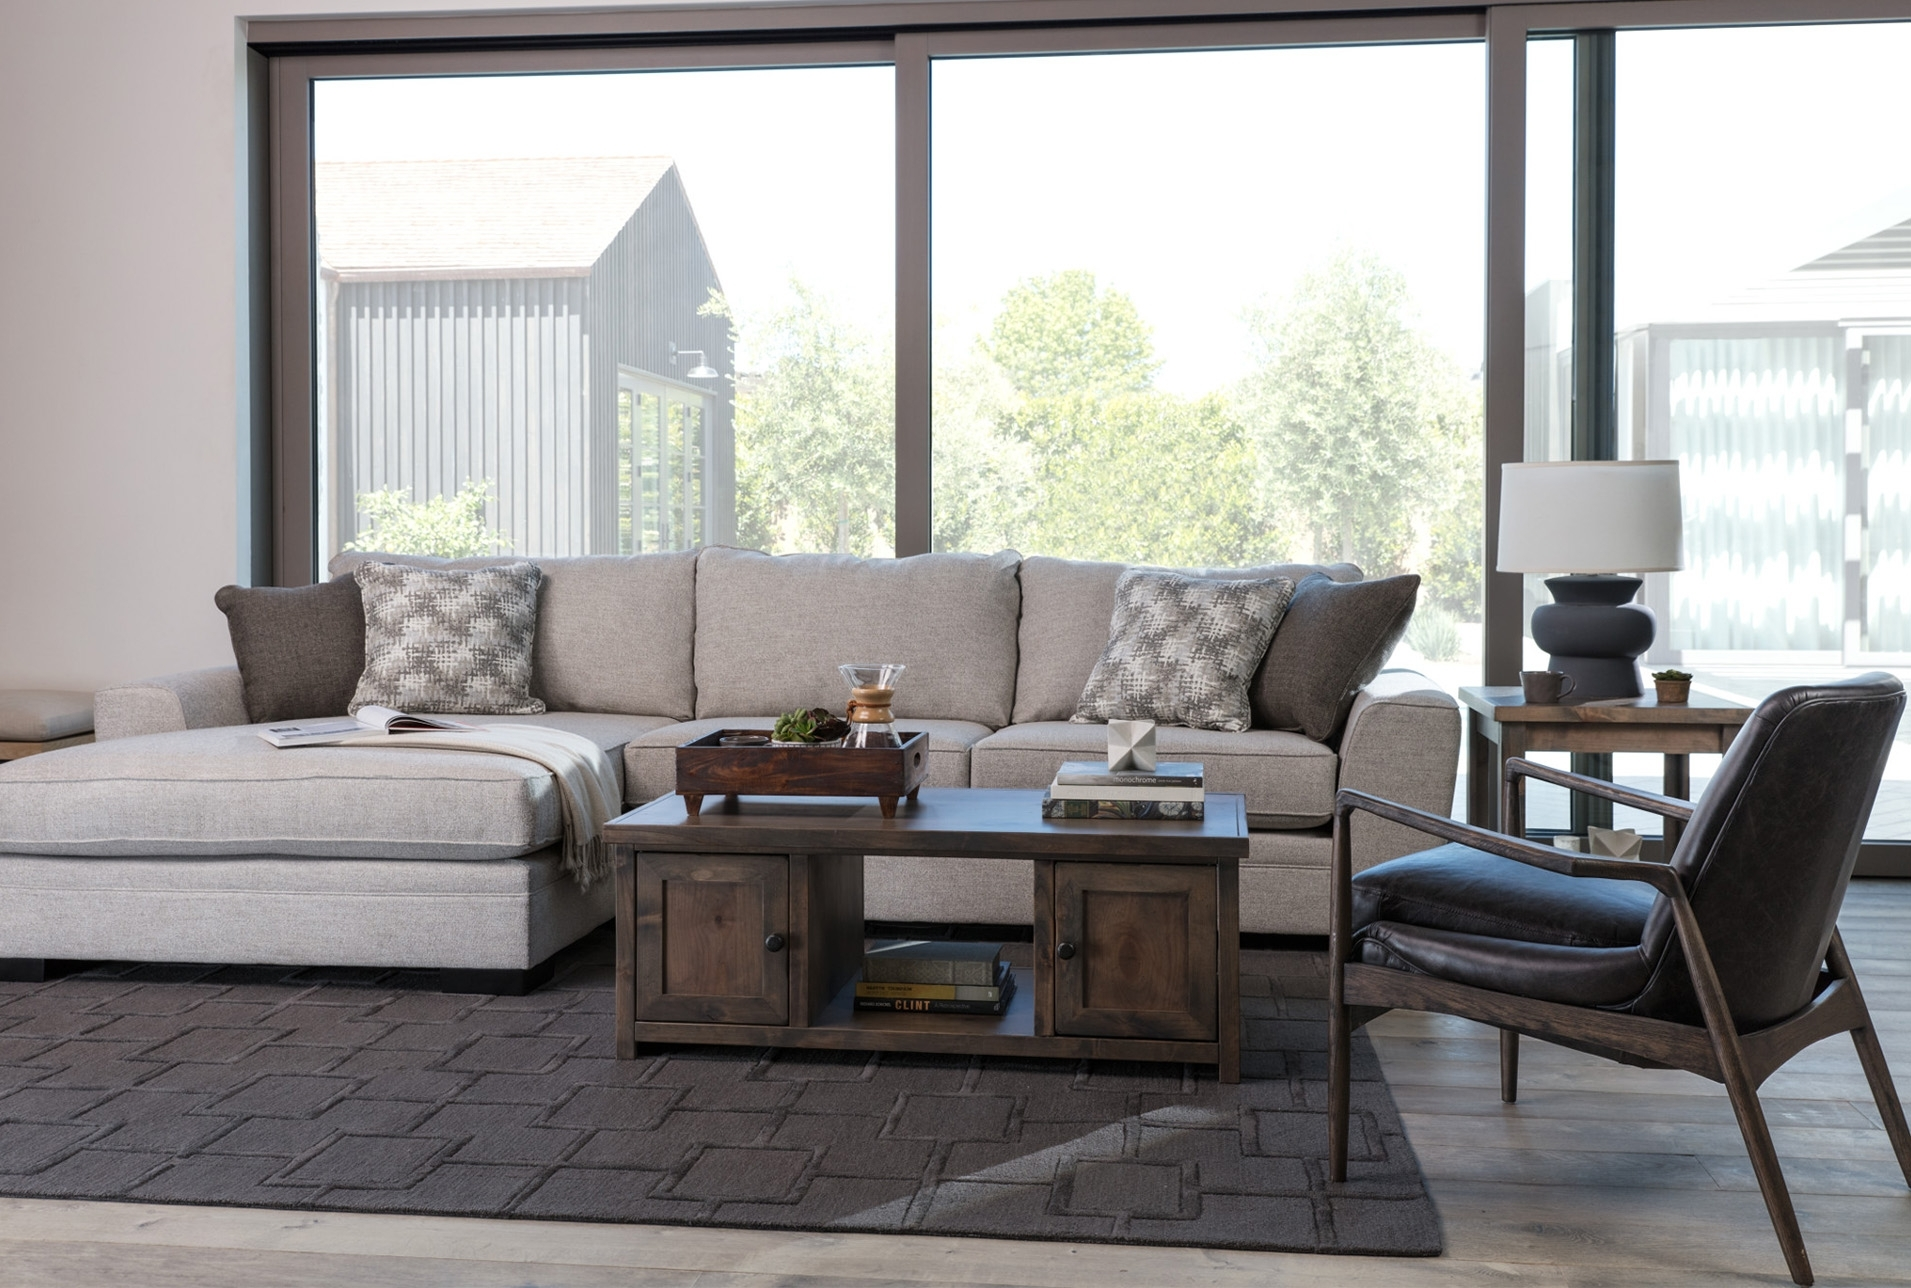 Delano 2 Piece Sectional W/raf Oversized Chaise | Products Throughout Delano 2 Piece Sectionals With Raf Oversized Chaise (Image 14 of 25)